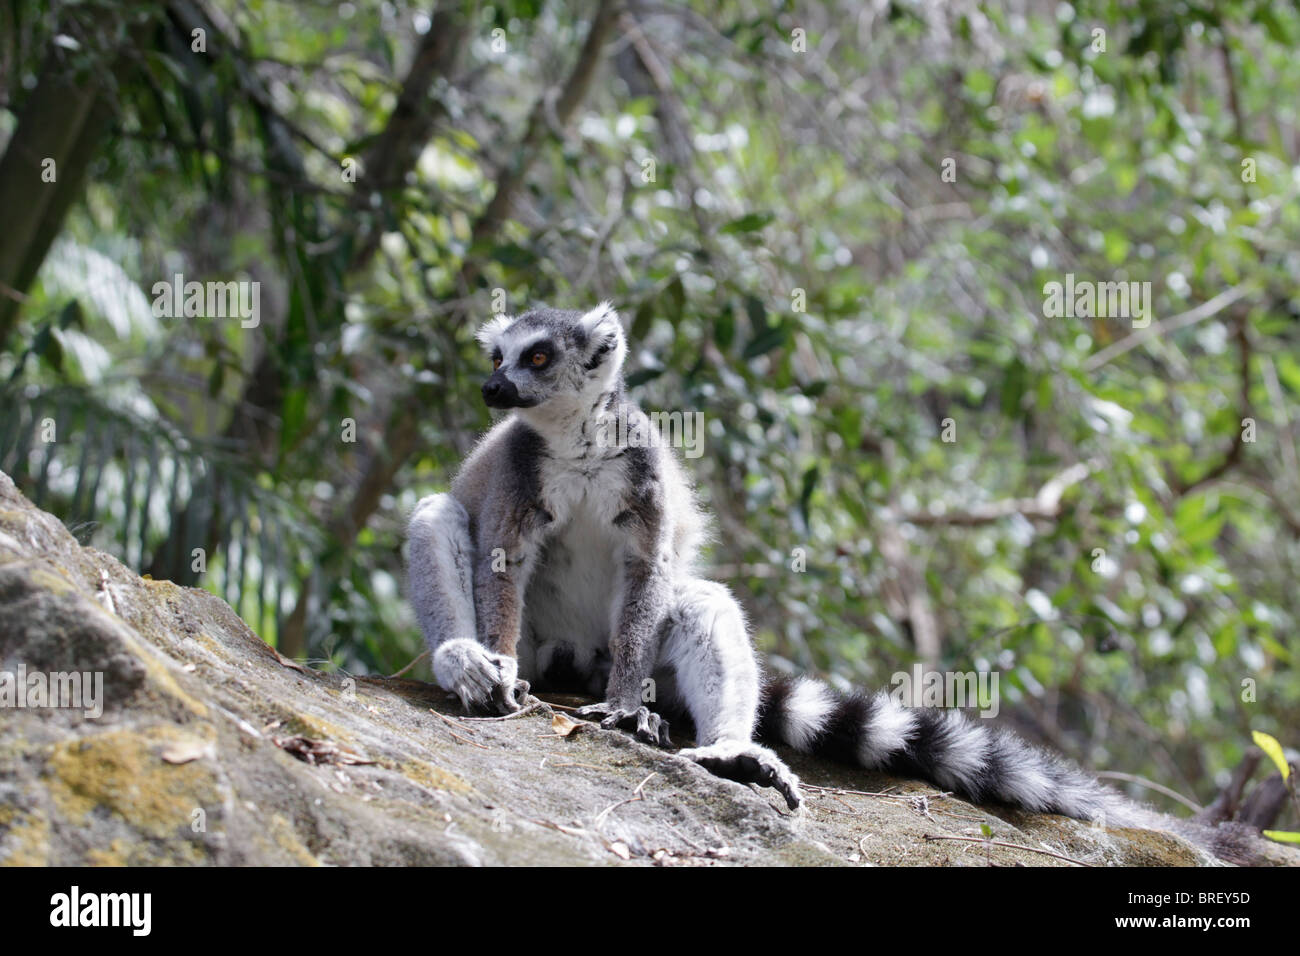 Wild Ring-tailed Lemur (Lemur catta) sitting on a rock in Isalo National Park, south-western Madagascar. Stock Photo